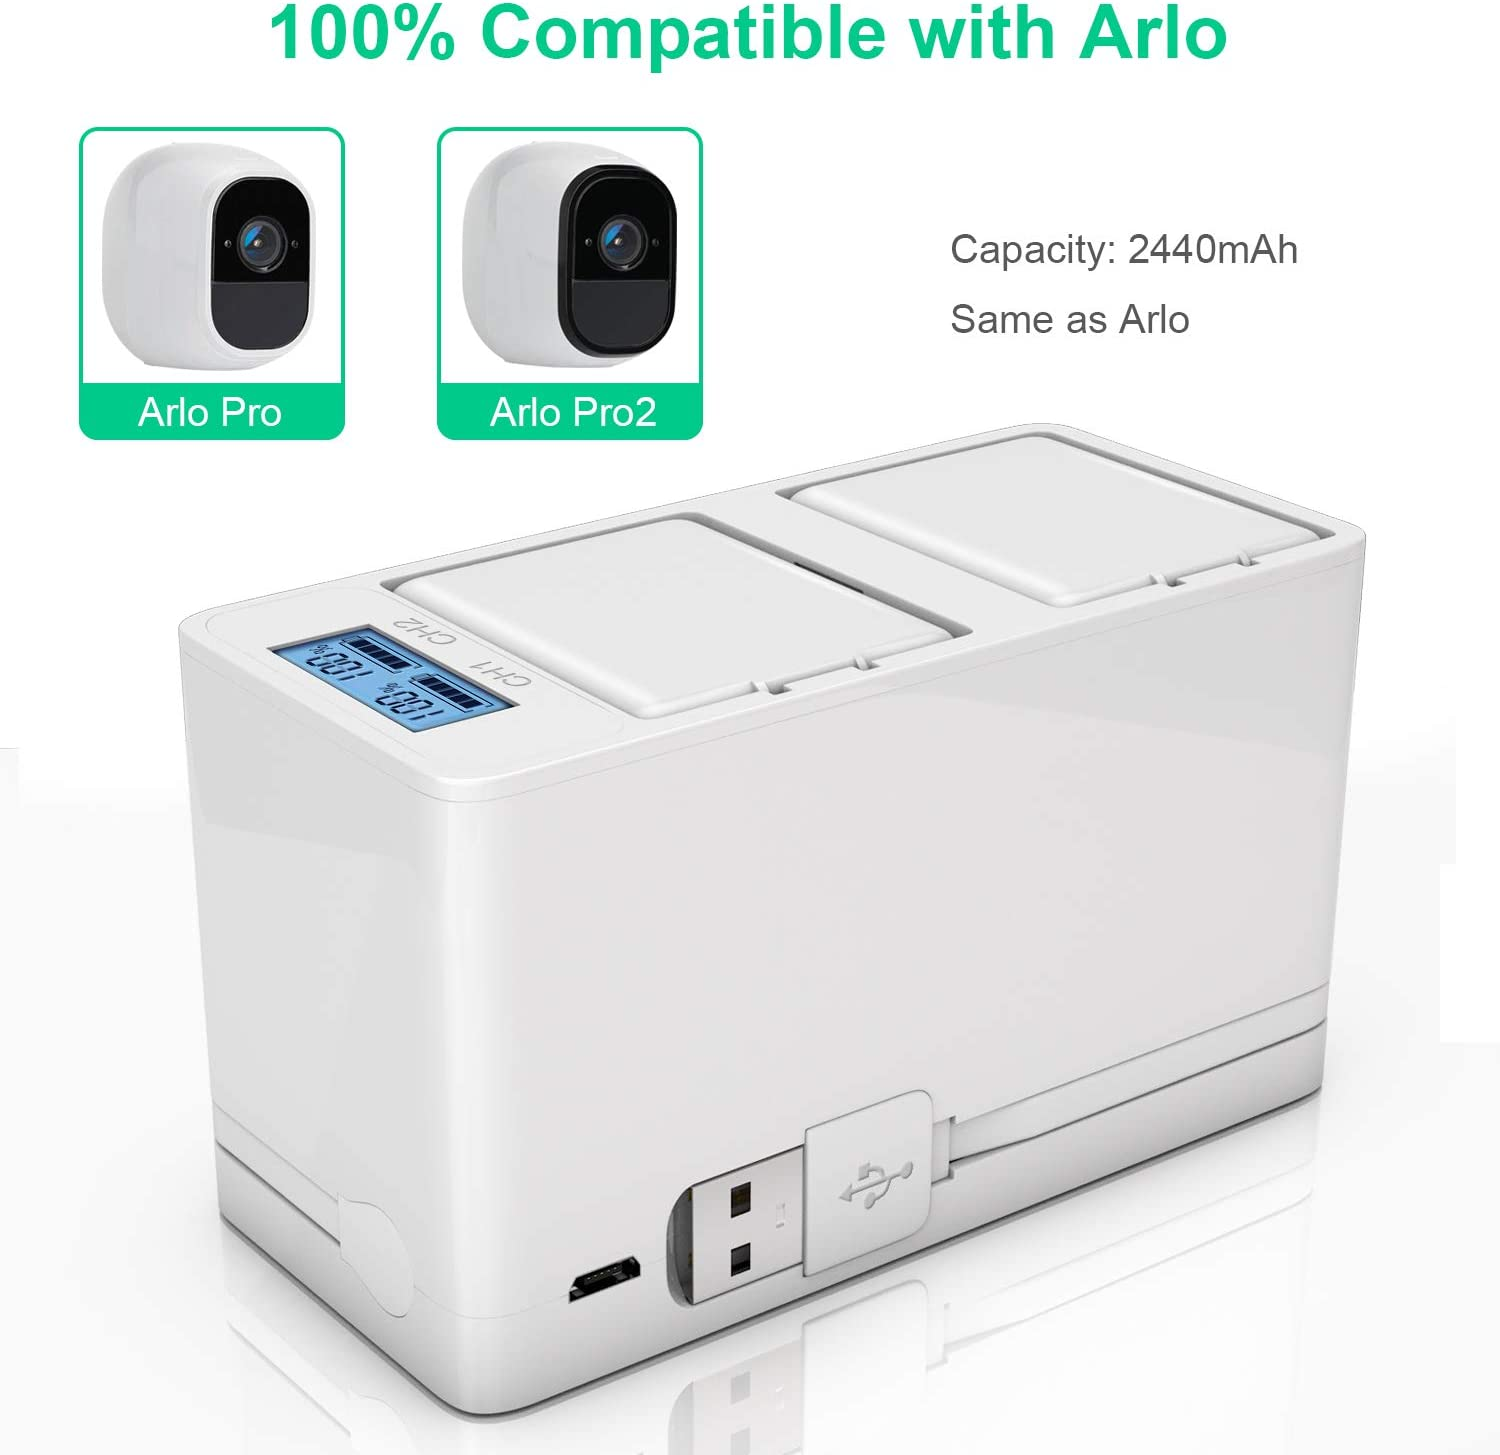 Arlo Pro 2, and Charger Rechargeable Batteries Dual Quick Battery Charger Station for Arlo Pro Camera VMA4400 TOMSHEIR Arlo Battery 1-Pack